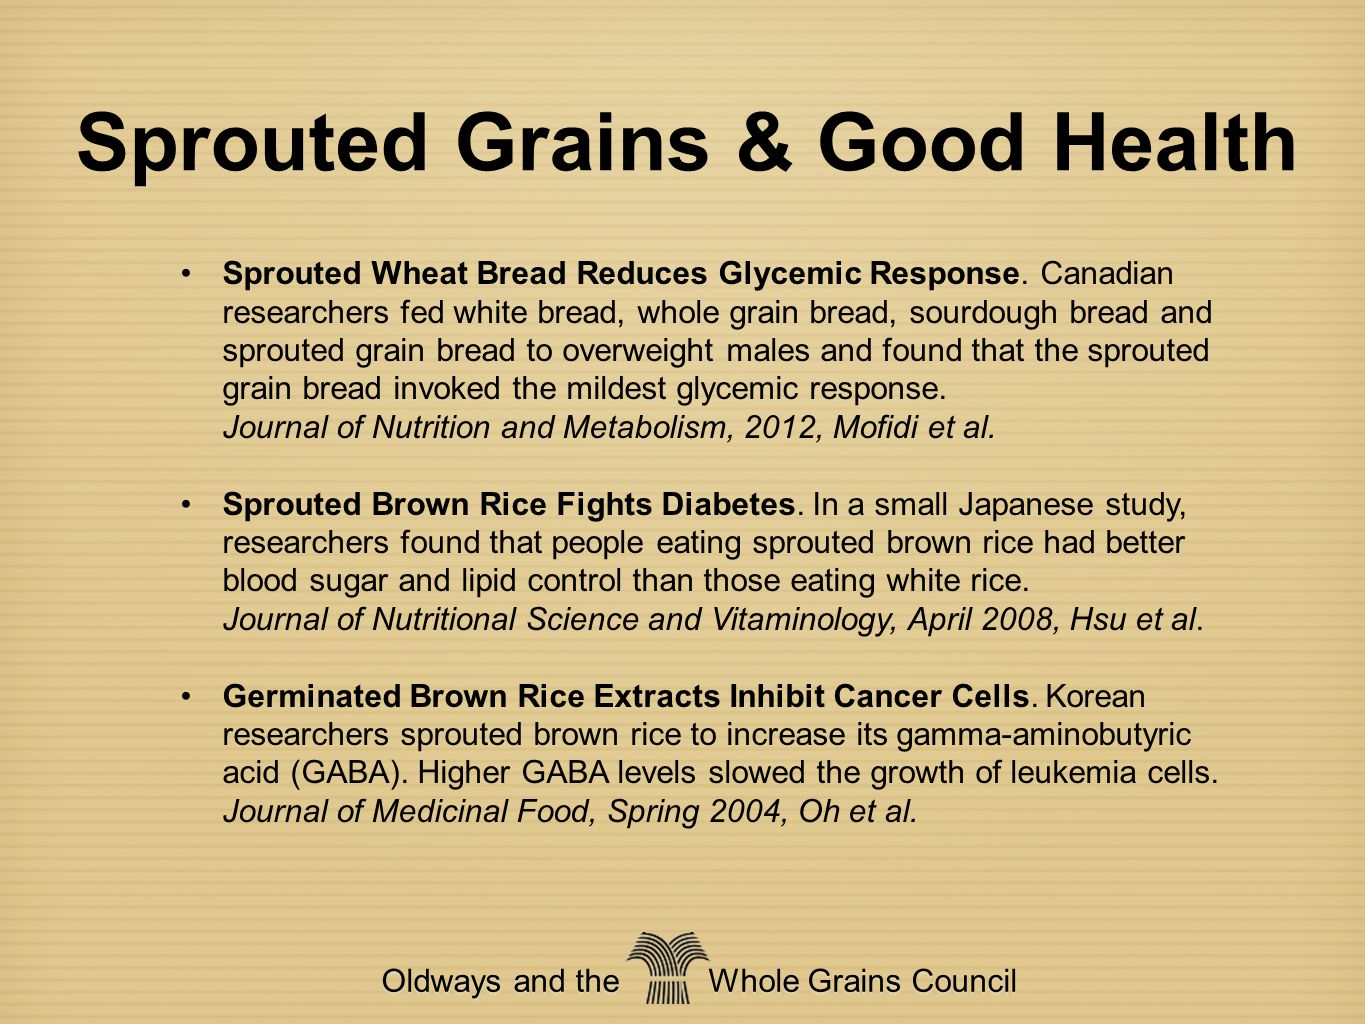 Sprouted Grains & Good Health